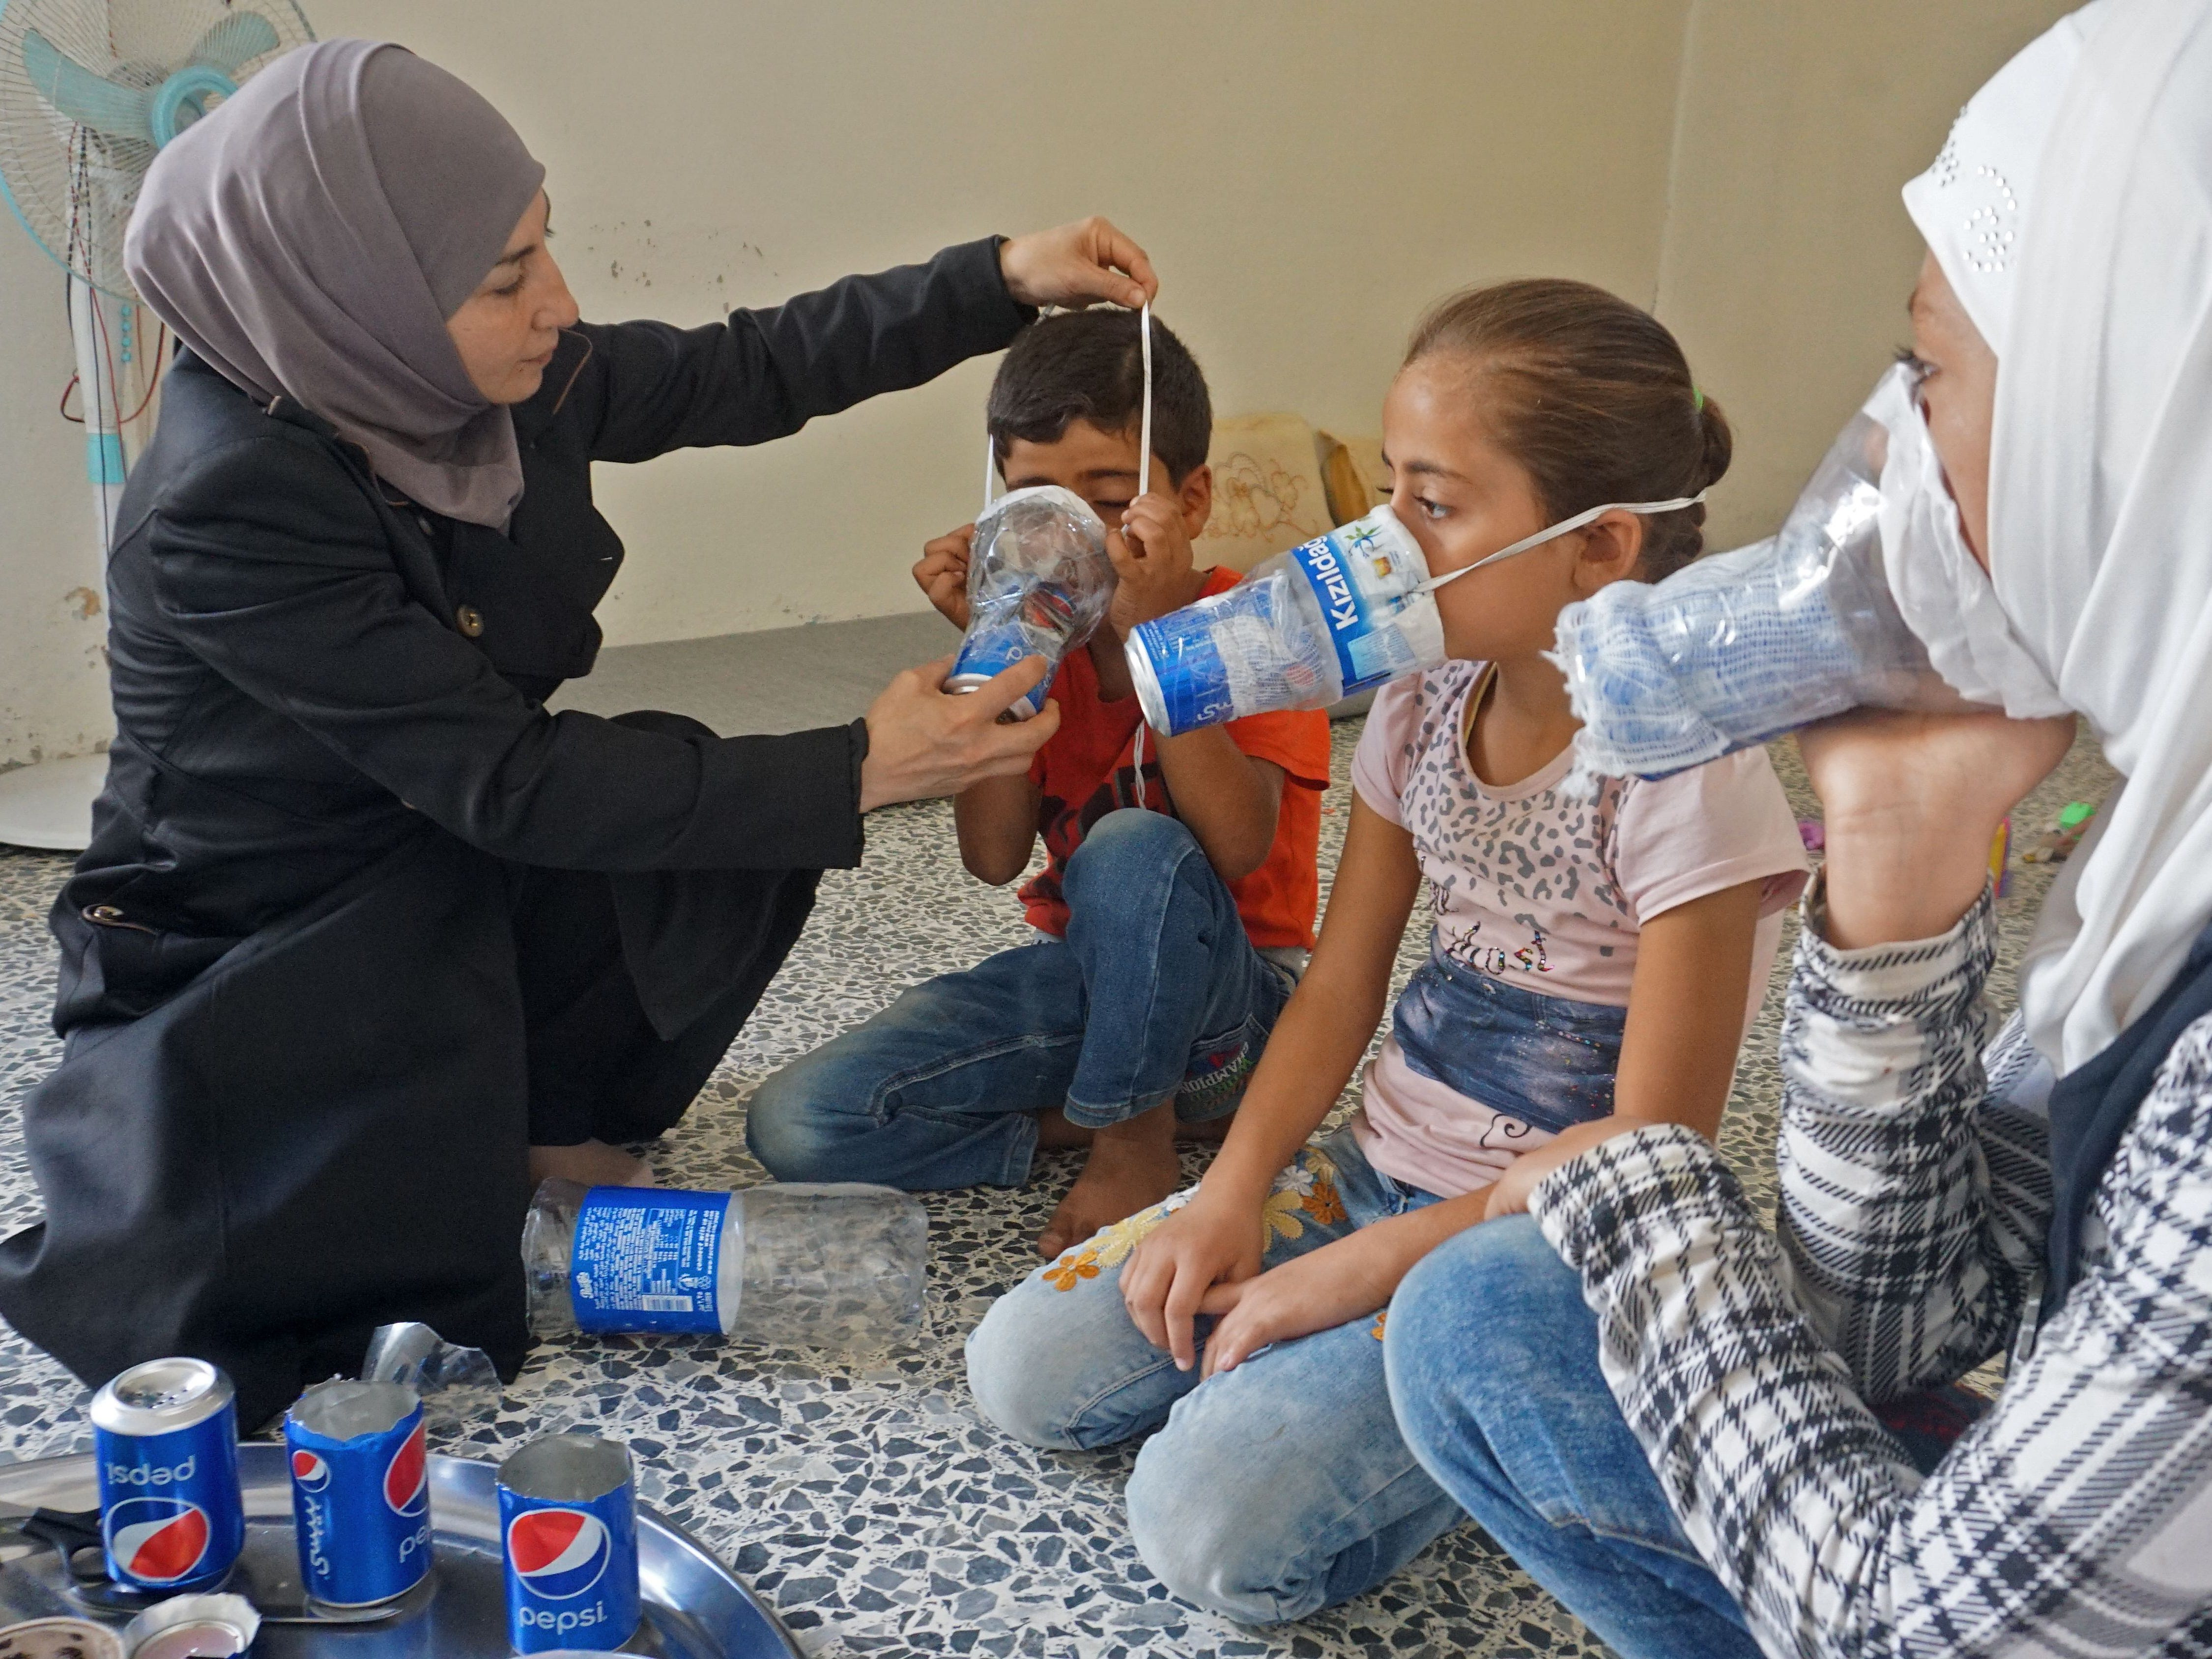 Um Majid (L) tries an improvised gas mask on familiy members in her home in Binnish in Syria's rebel-held northern Idlib province as part of preparations for any upcoming raids on September 12, 2018. - The Syrian regime and its Russian ally are threatening an offensive to retake the northwestern province of Idlib, Syria's last rebel bastion.